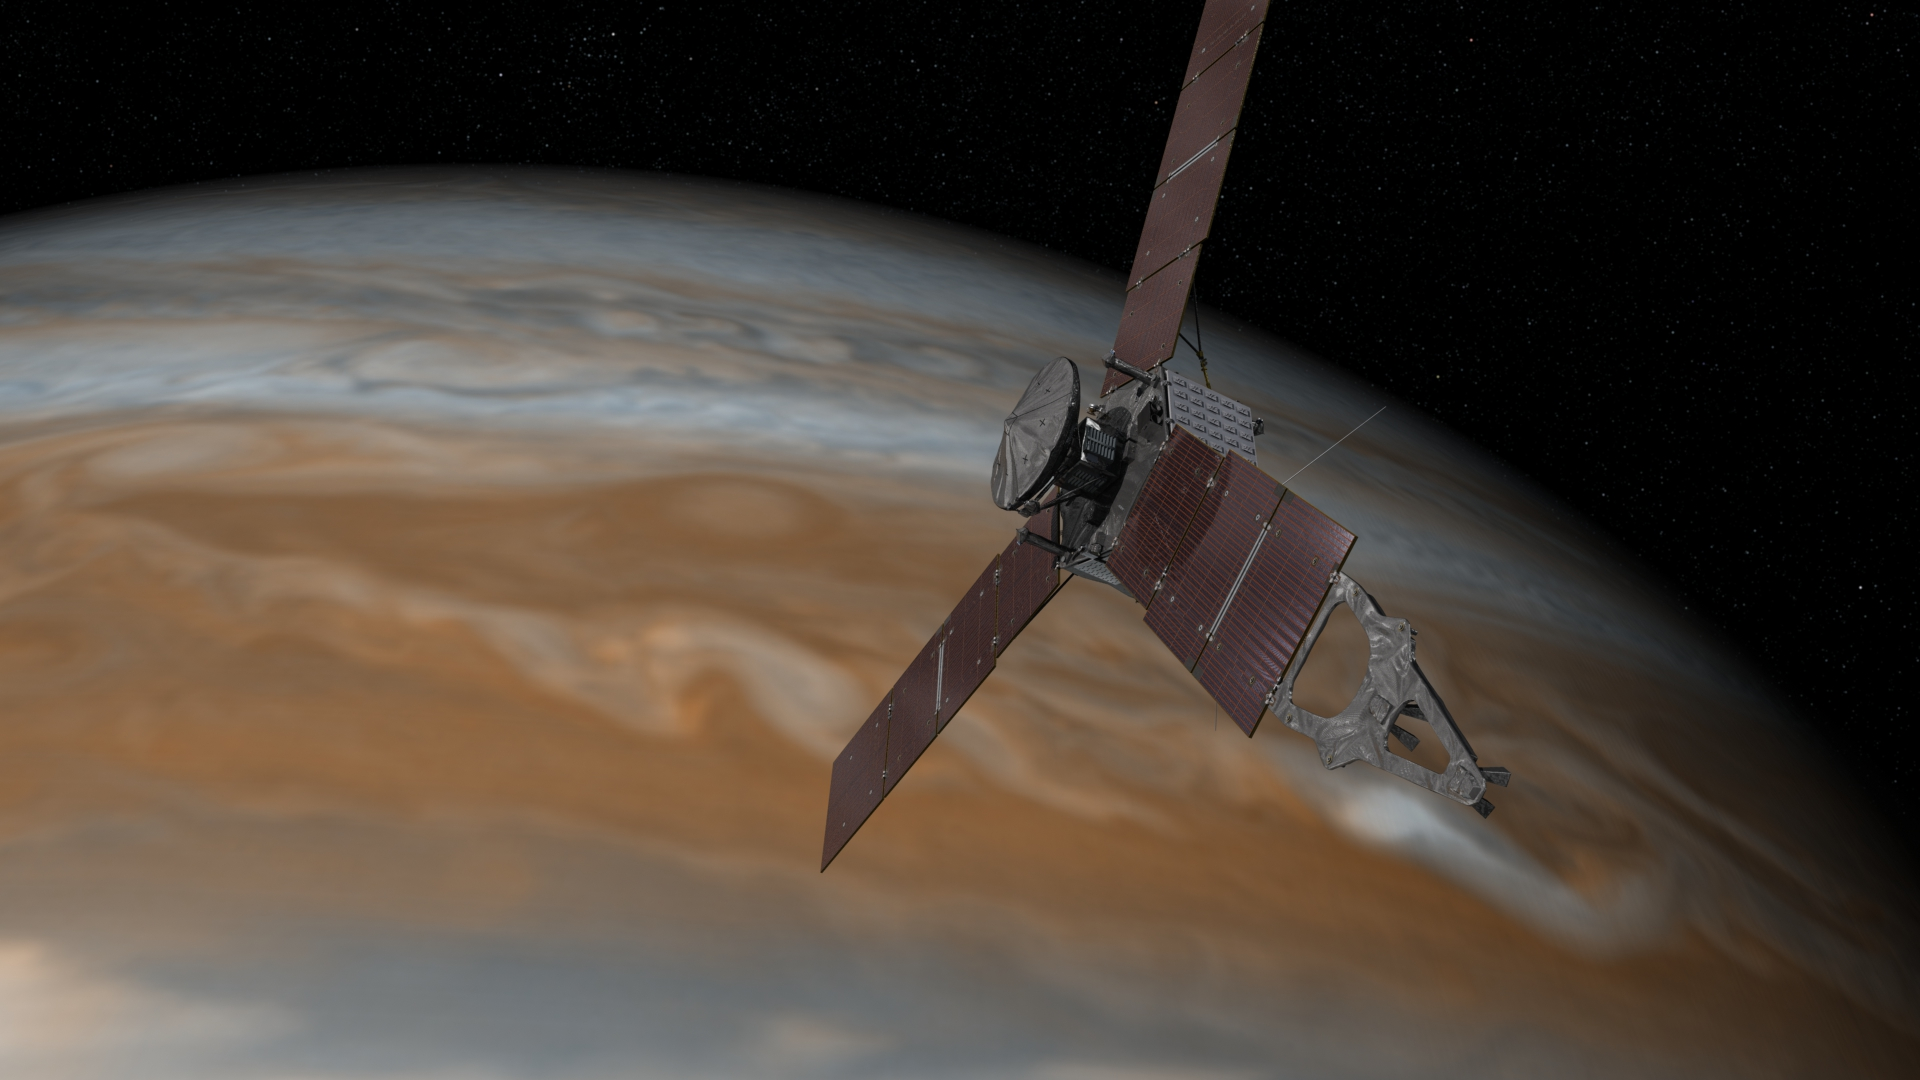 Mission To Jupiter Infrared Video Of A Hovering Nasa Lander Prepares Its Probe Juno For Arrival Blogger Avatarby Jon Fingas July 08 2015